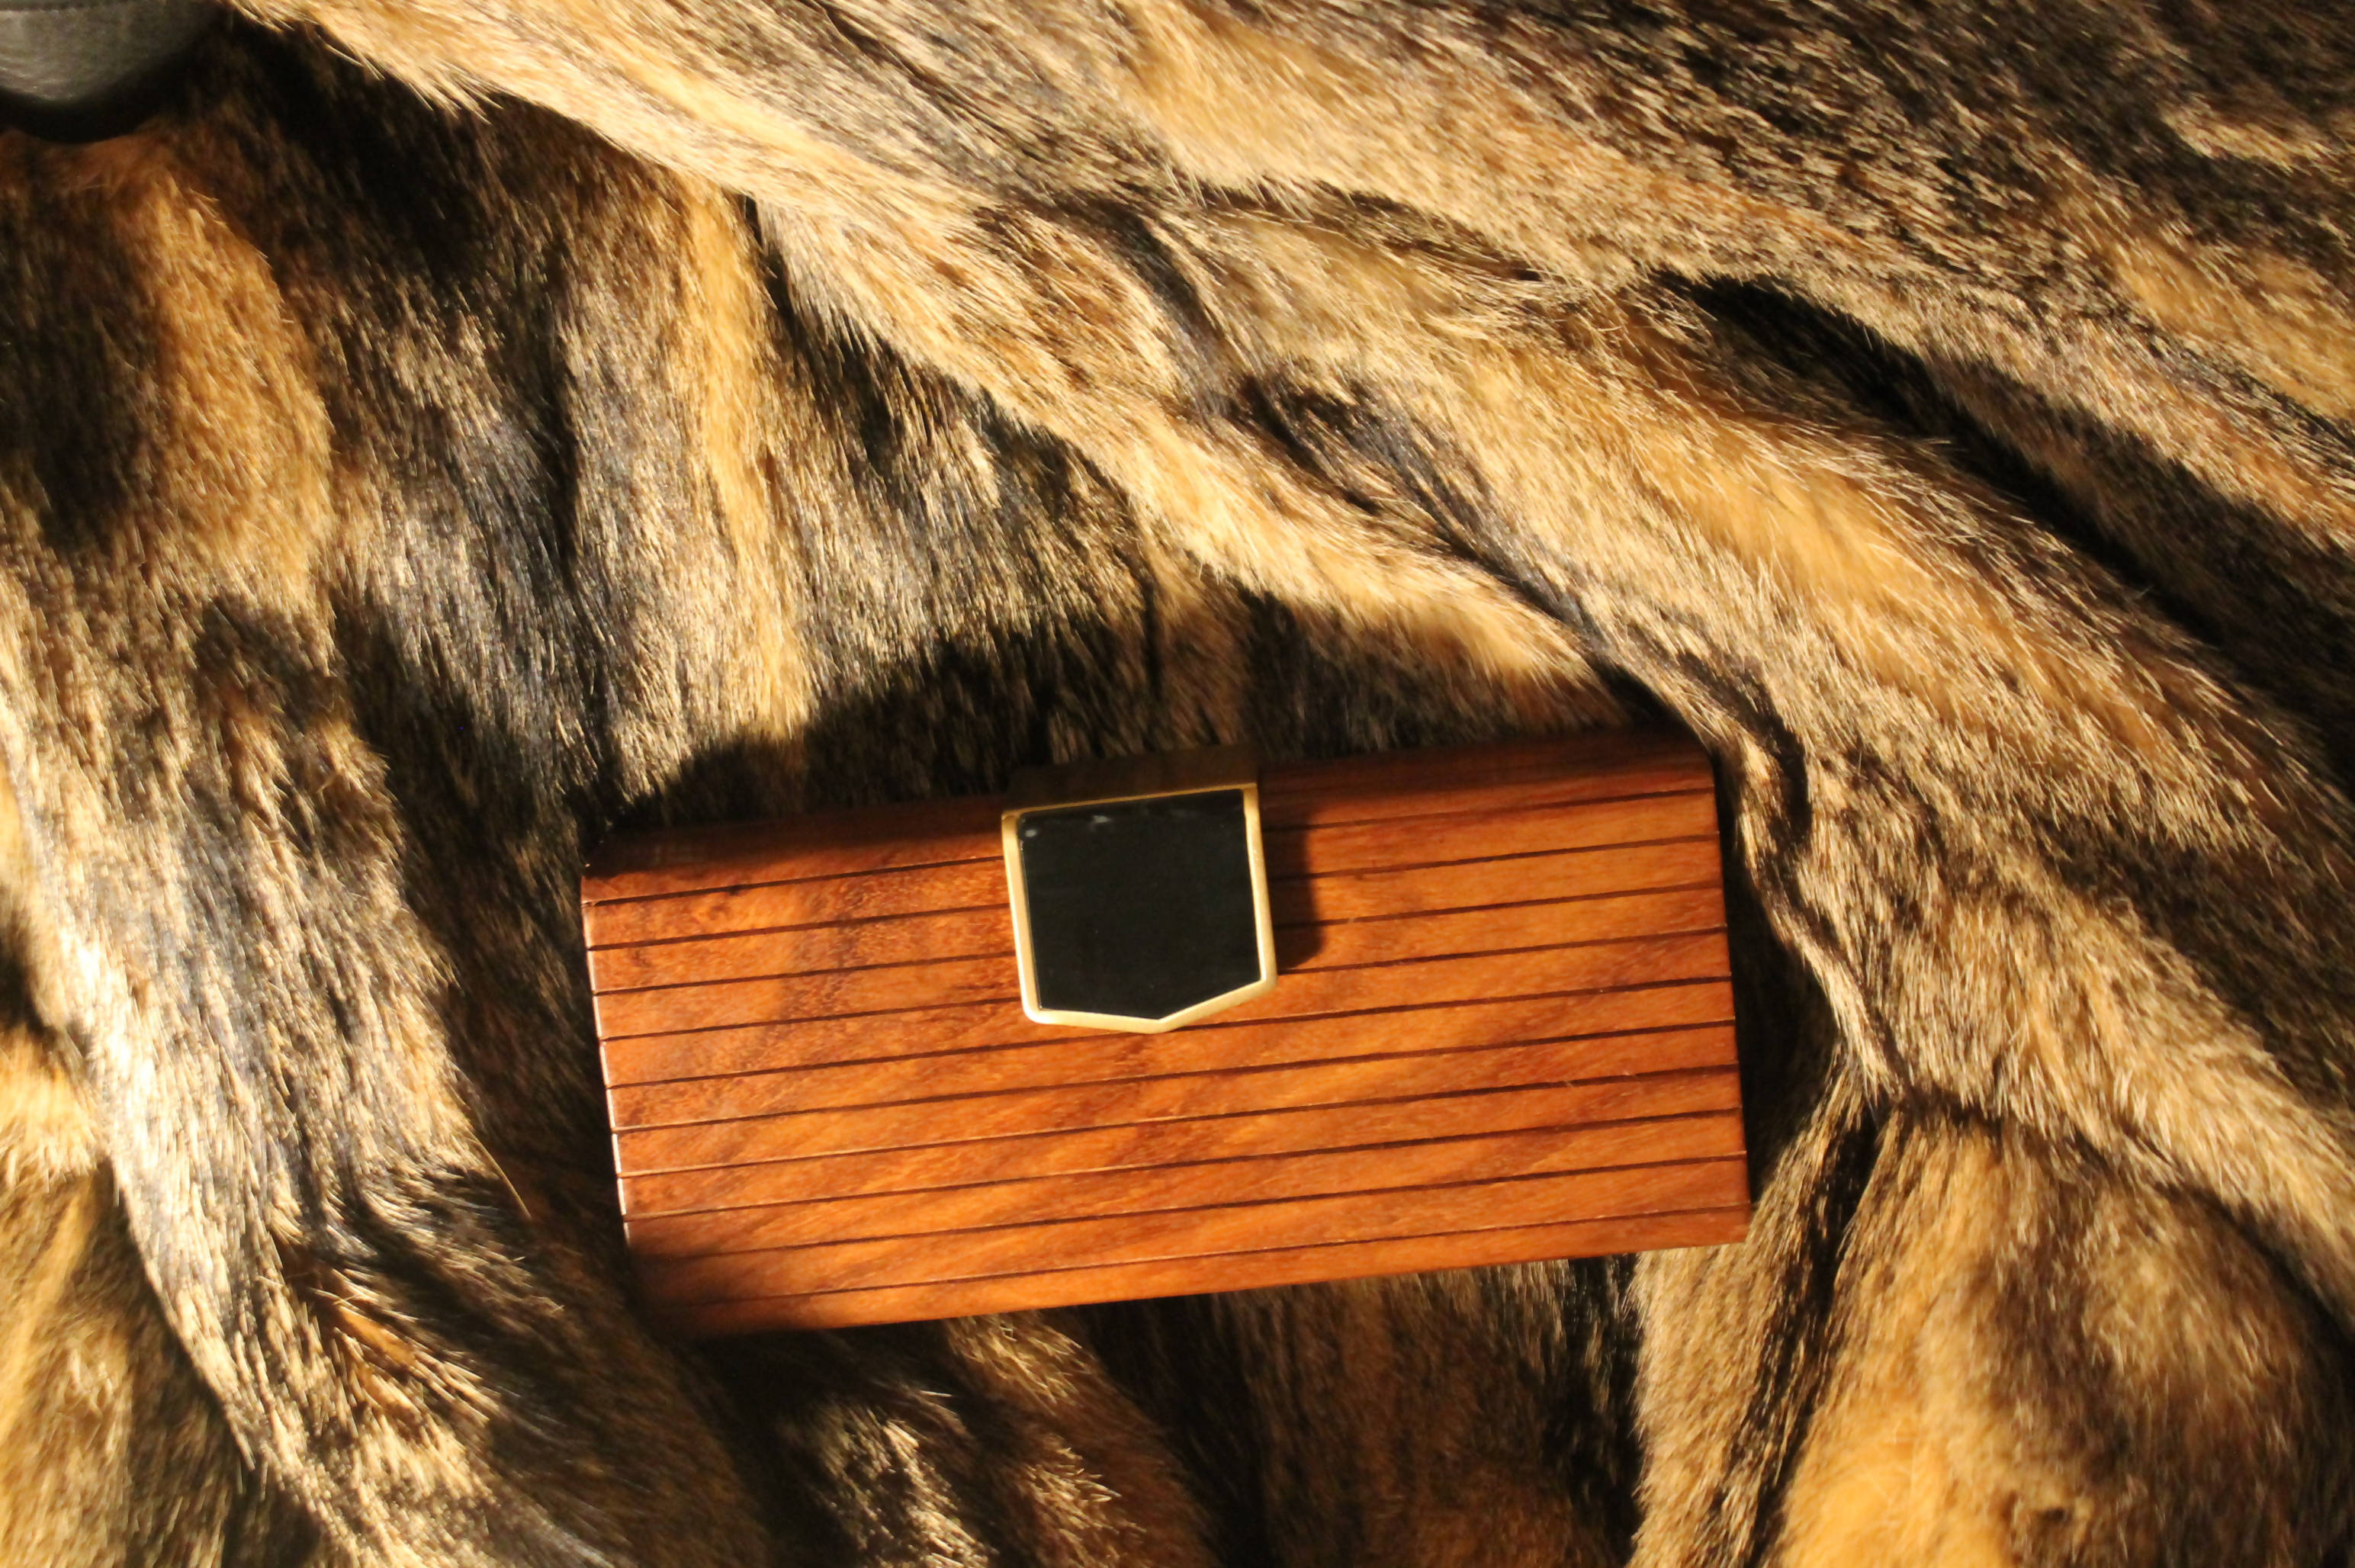 SELENE Clutch,SOUHA DAYEH, Curated Designer at Freesigners.com